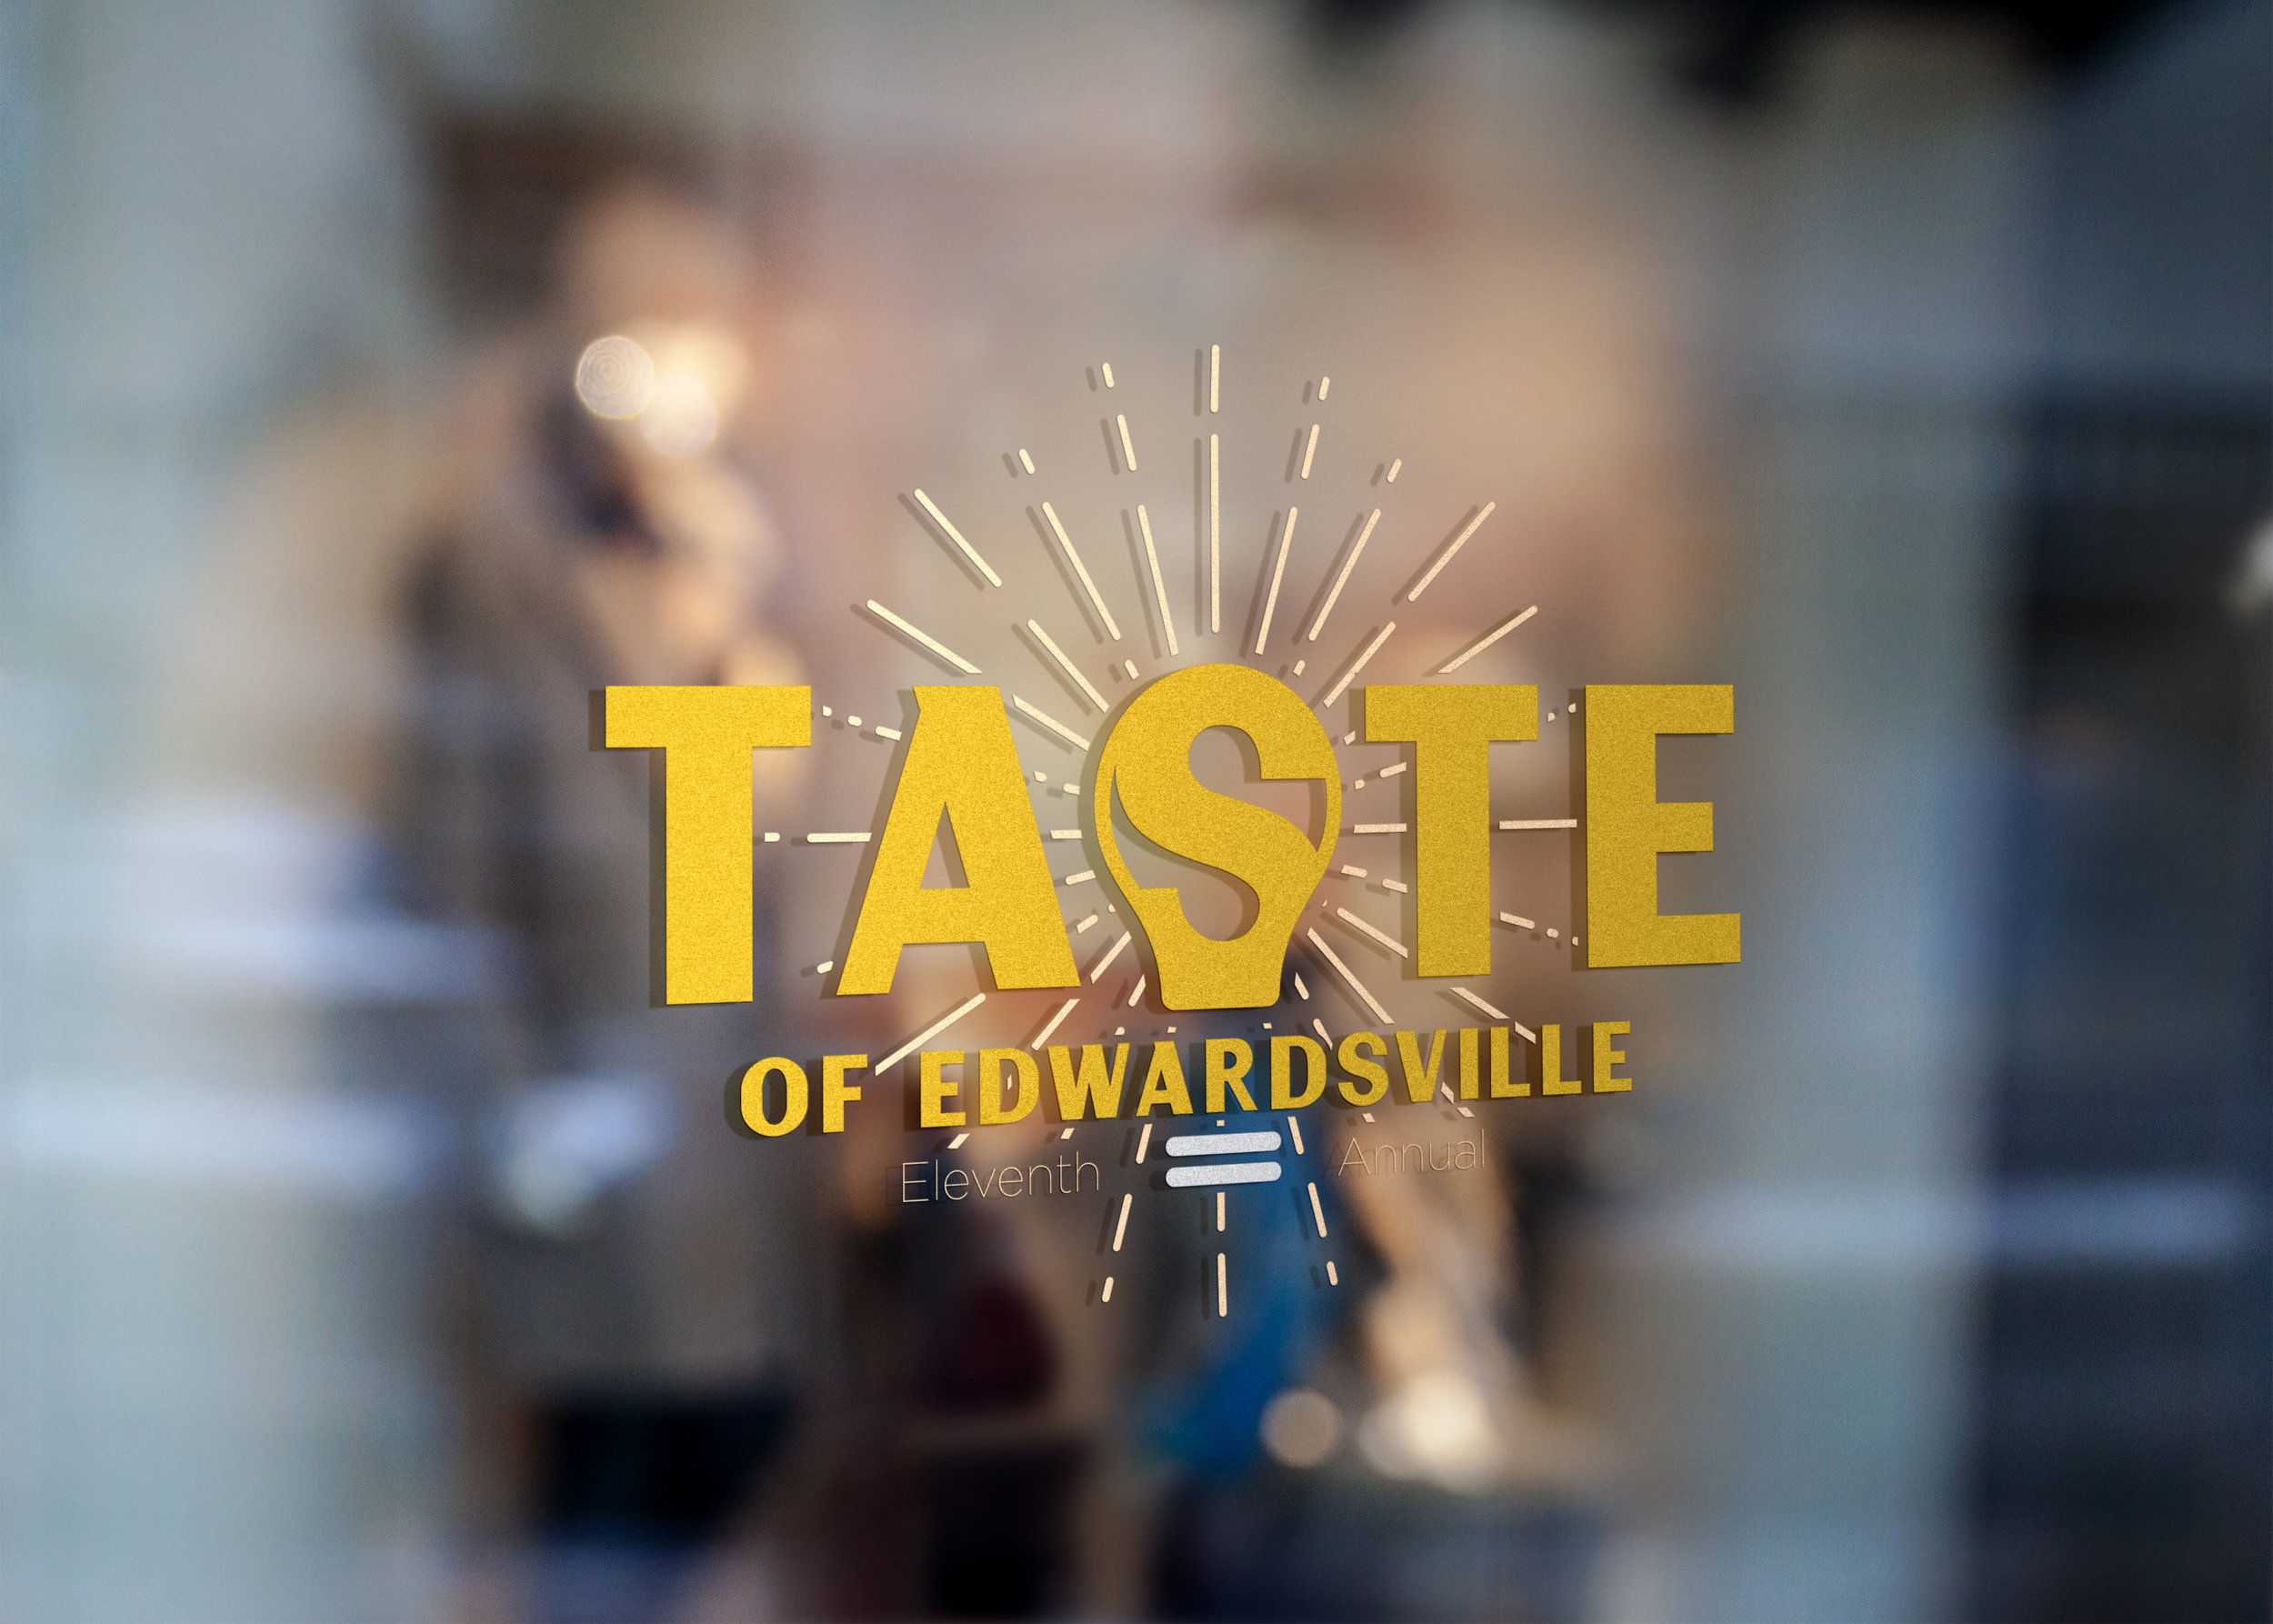 taste of edwardsville - A fantastic fund raising event hosted every year by Edwardsville Neighbors. For 2019 I branded the event and designed close to 200 pieces.